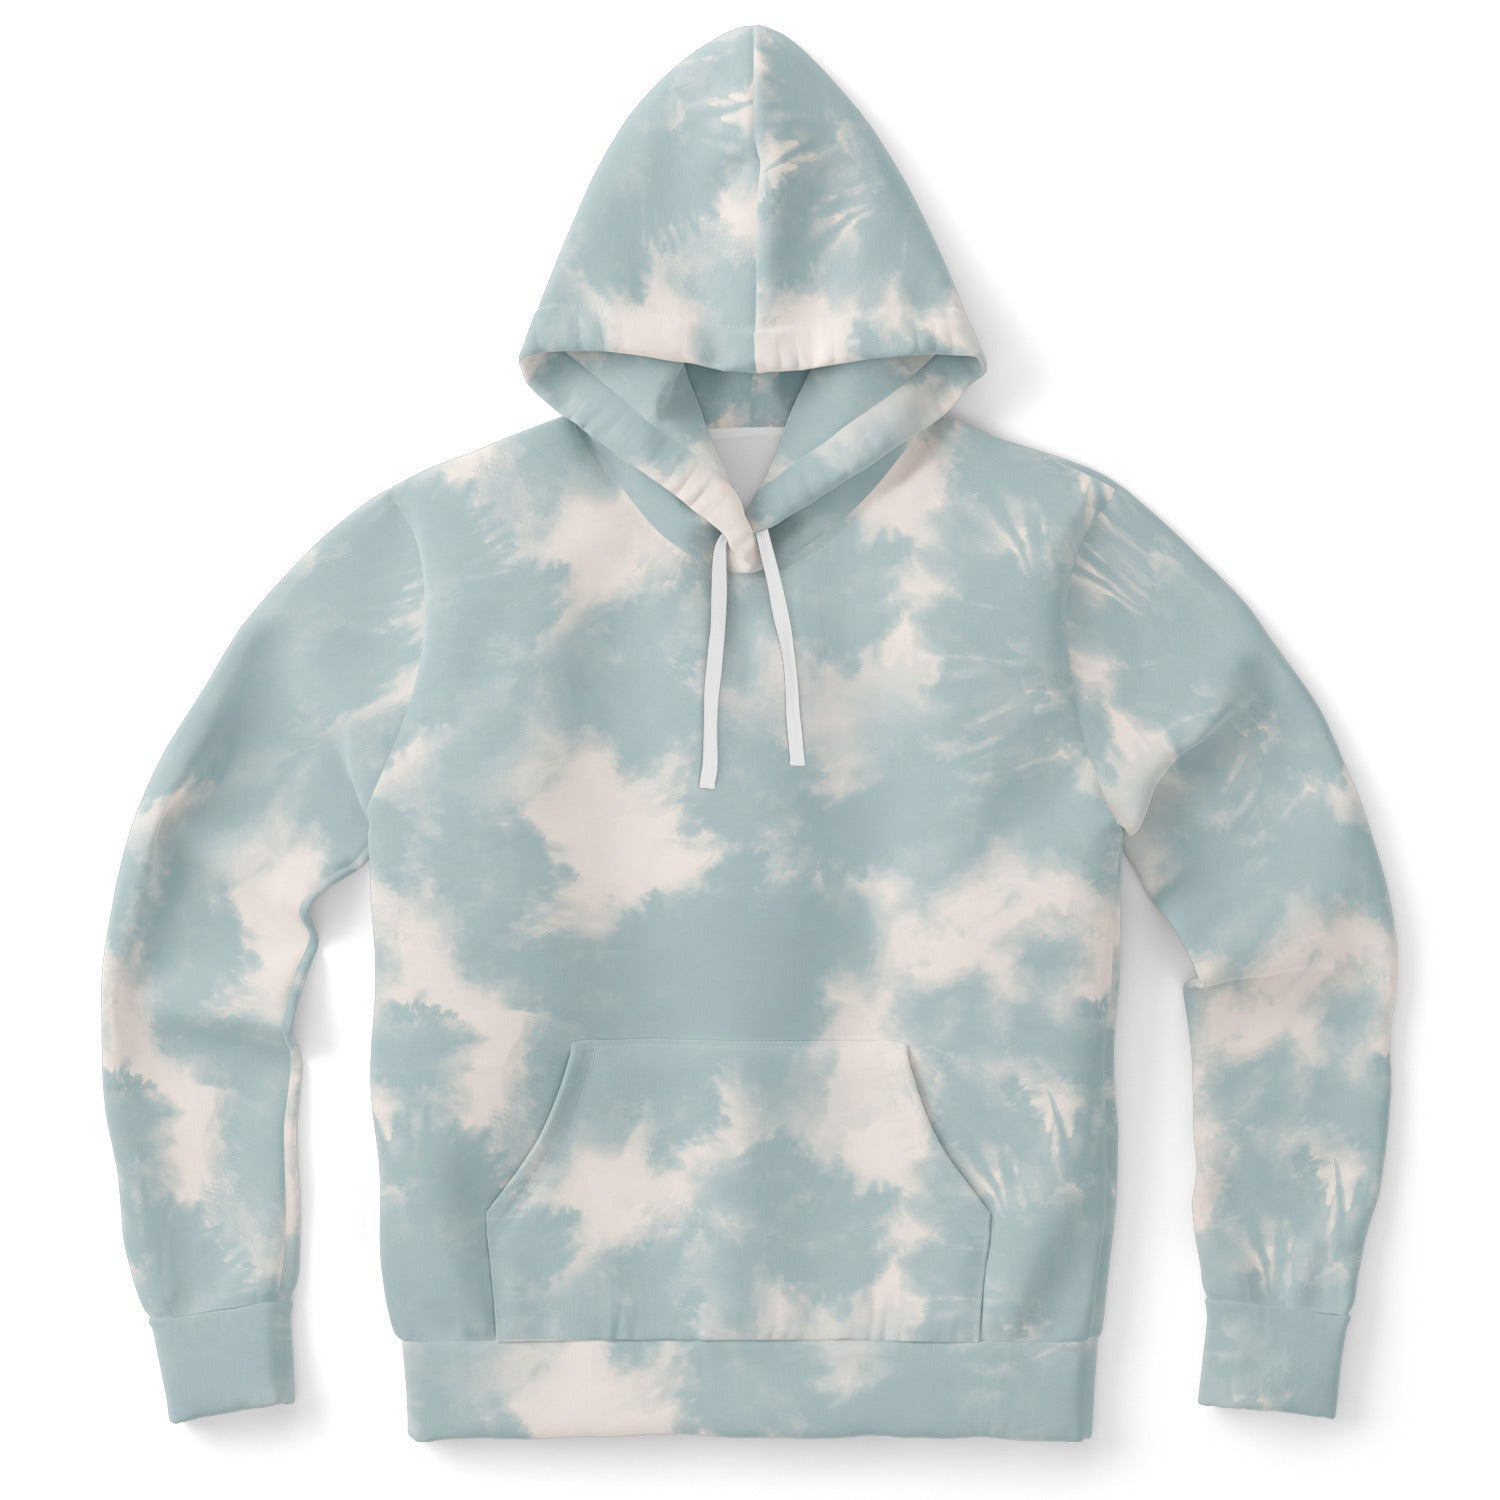 Cuteanlovely | Dusty Teal Tie Dye Hoodie